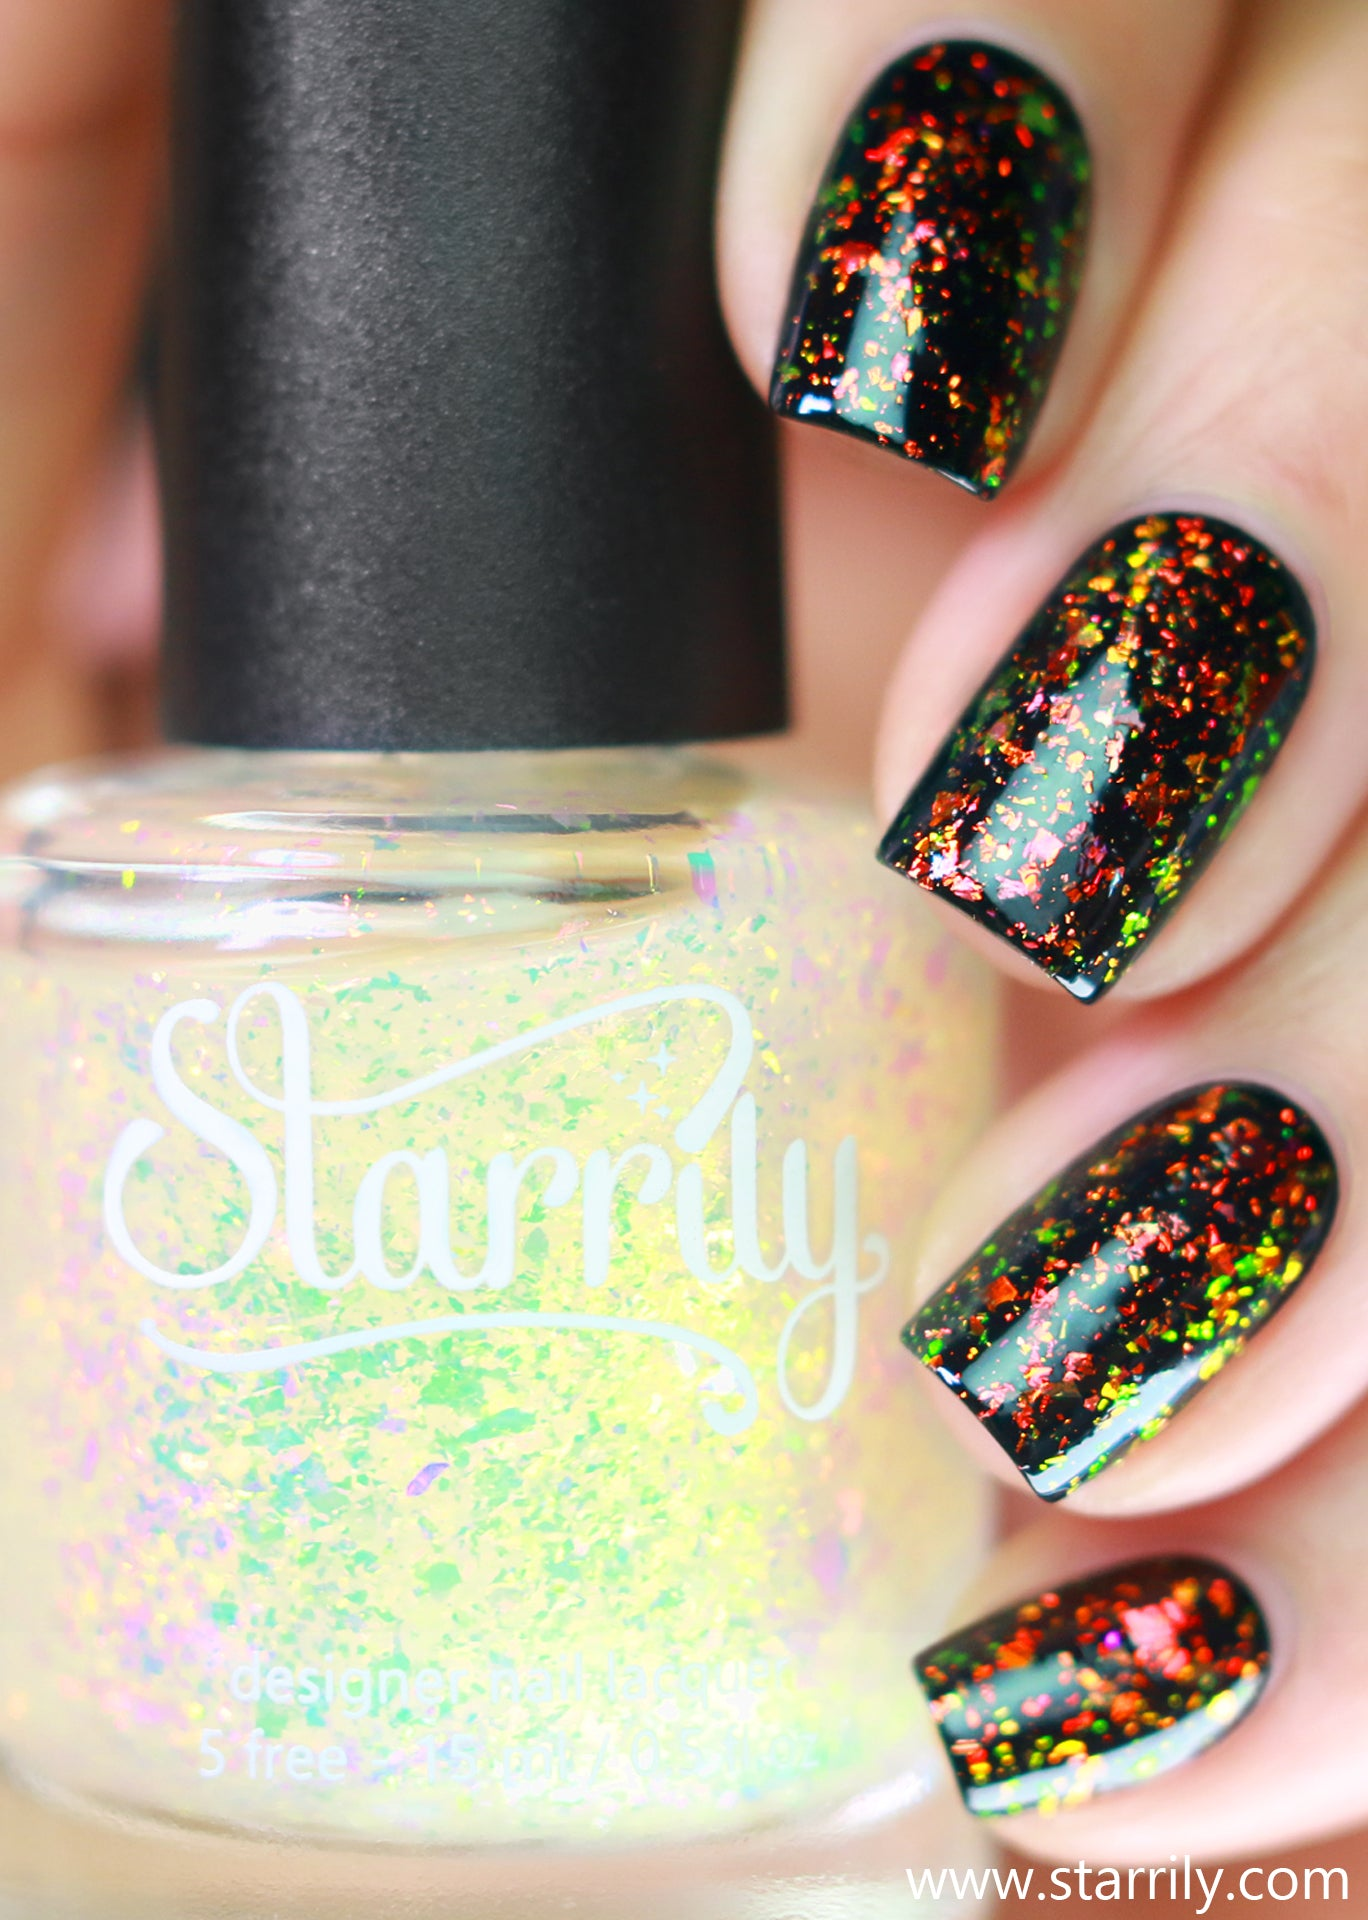 Occult is a unique multichrome iridescent flake topper that shifts from orange and green